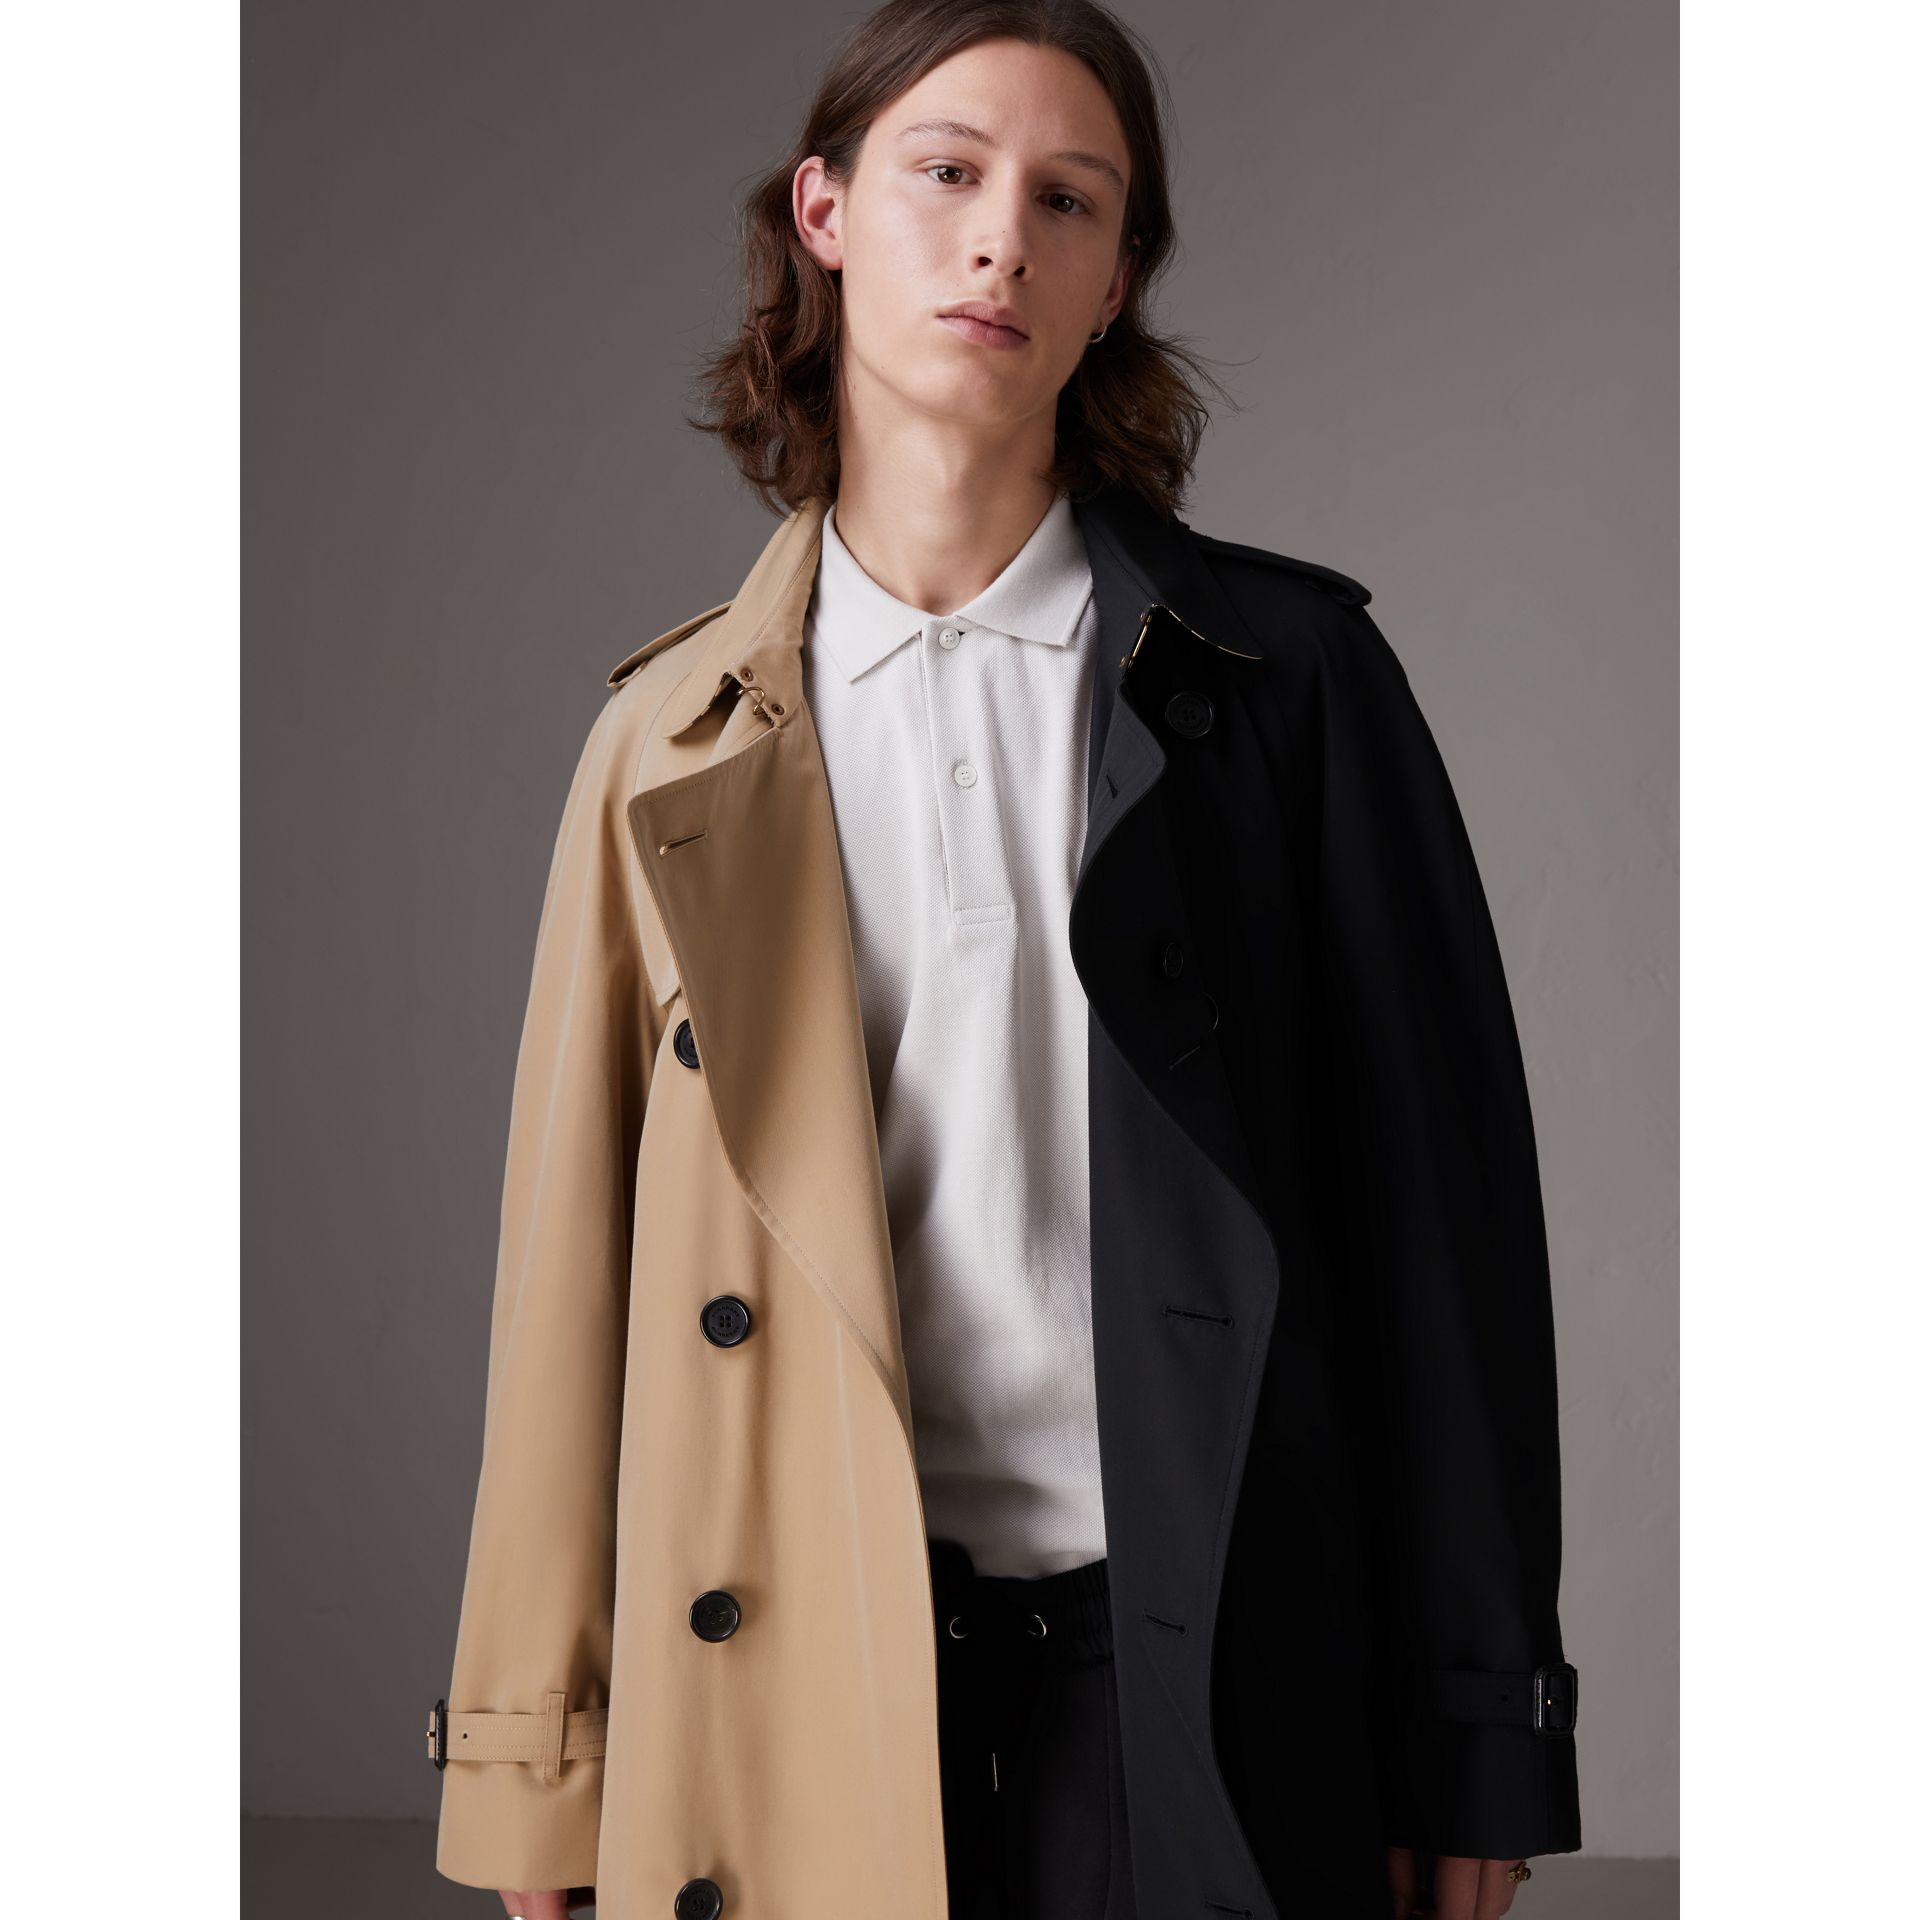 Gosha x Burberry Two-tone Trench Coat in Honey | Burberry United Kingdom - gallery image 7